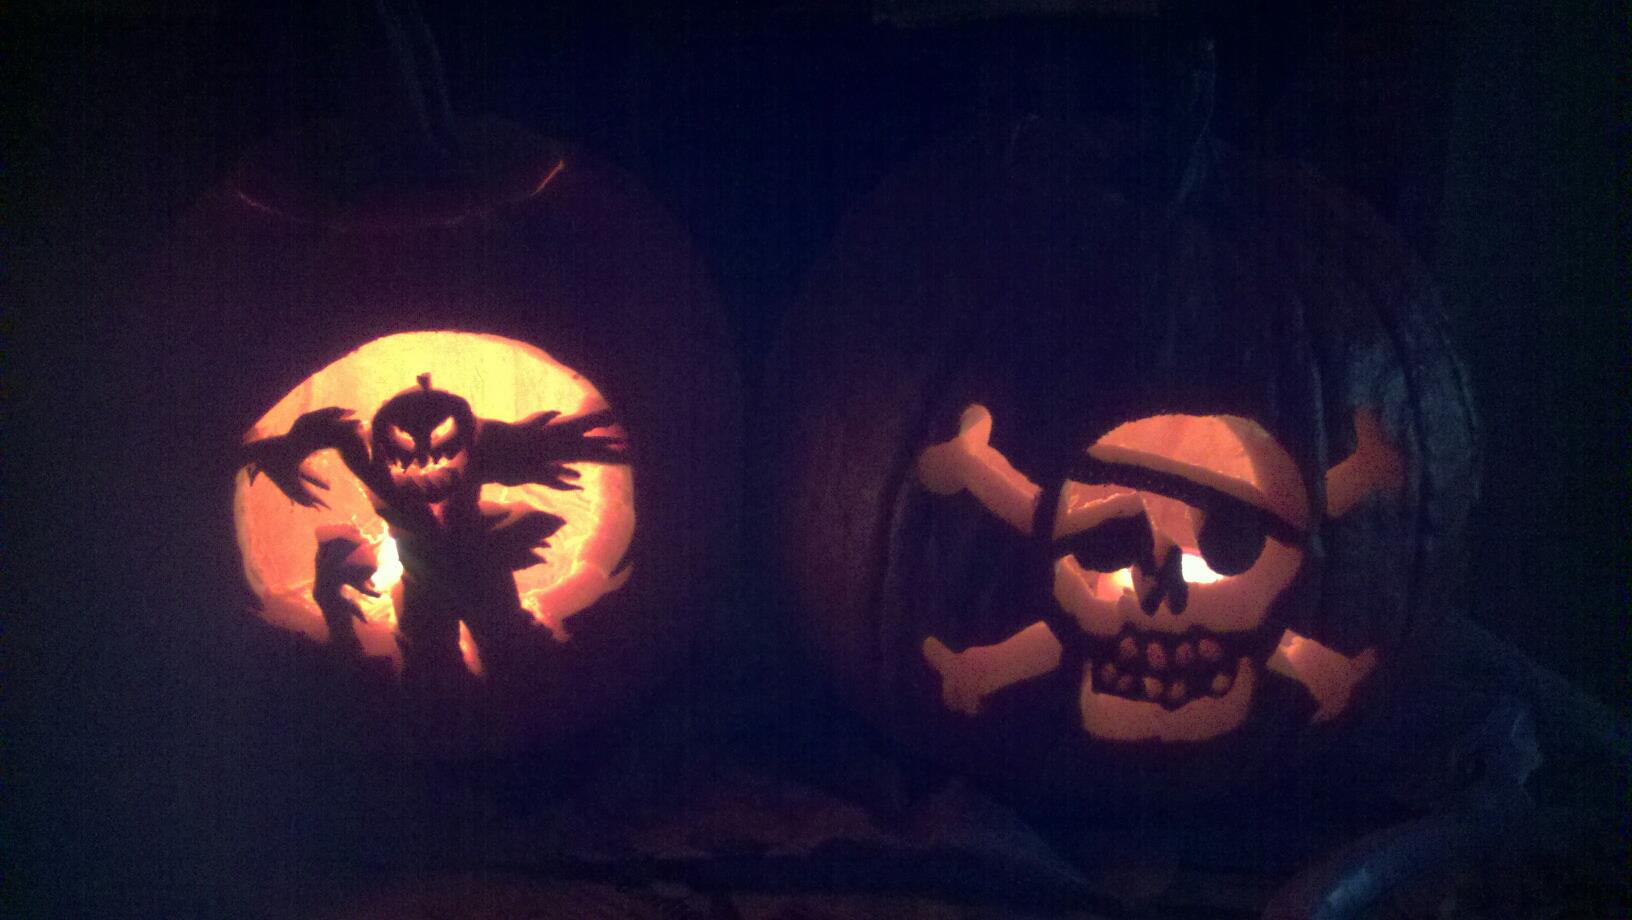 Halloween Scarecrow and Jolly Roger pumpkins